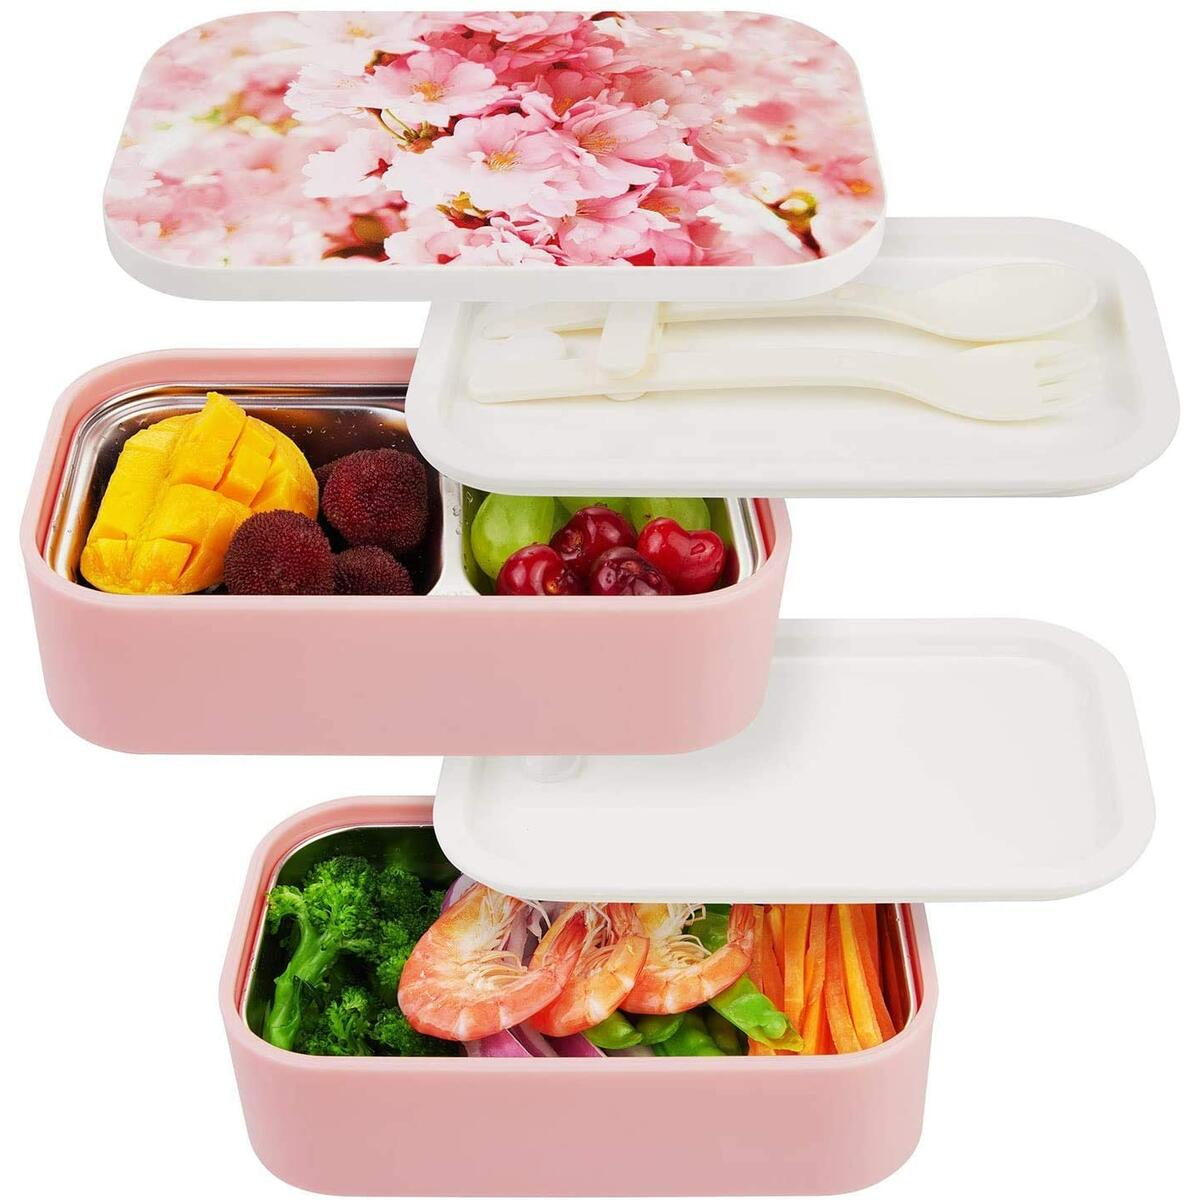 Stainless Steel Bento Box - All-in-One Leak Proof Stackable Container - Modern Bento-Style Design, Built-in Plastic Utensil Set, and Nylon Sealing Strap (Cherry)